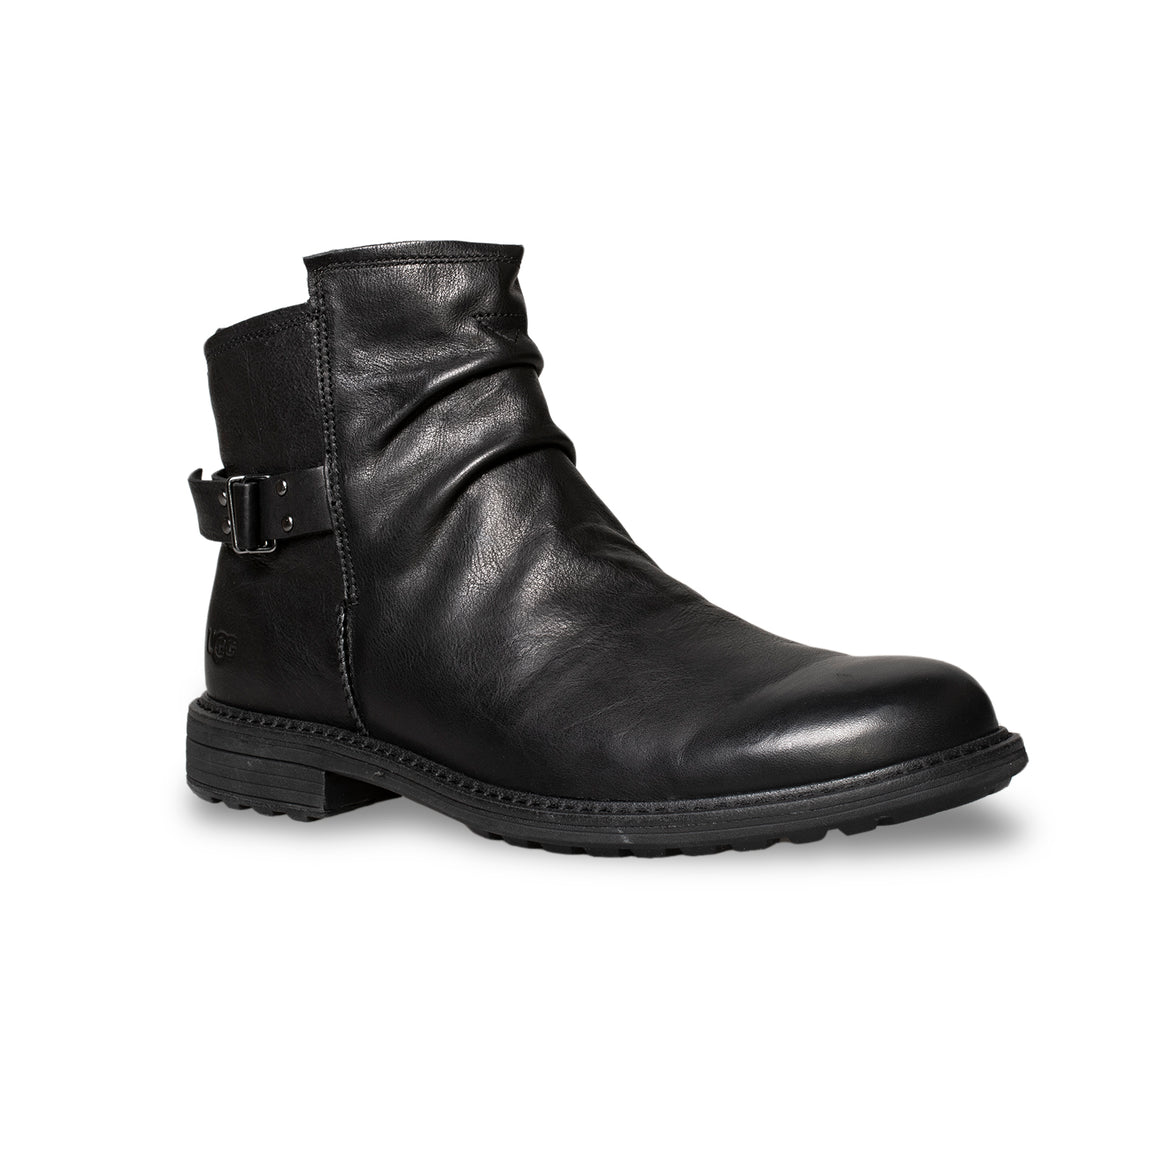 UGG Morrison Pull-On Black Boots - Men's